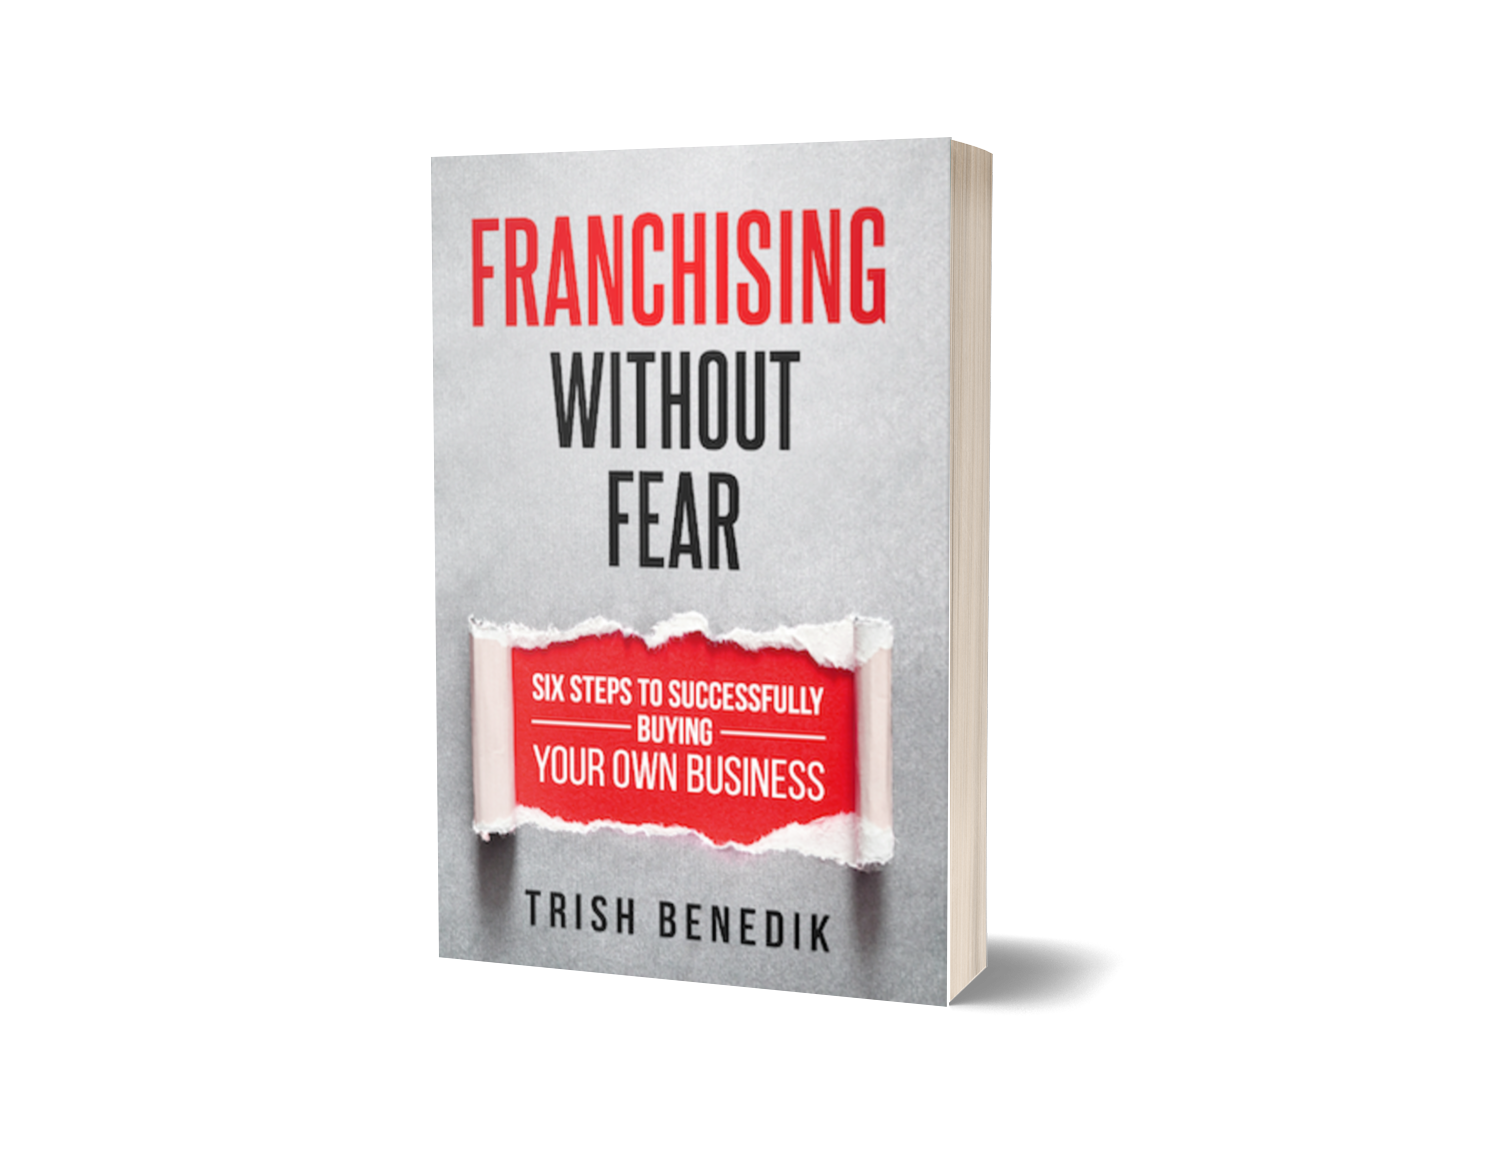 Franchising Without Fear